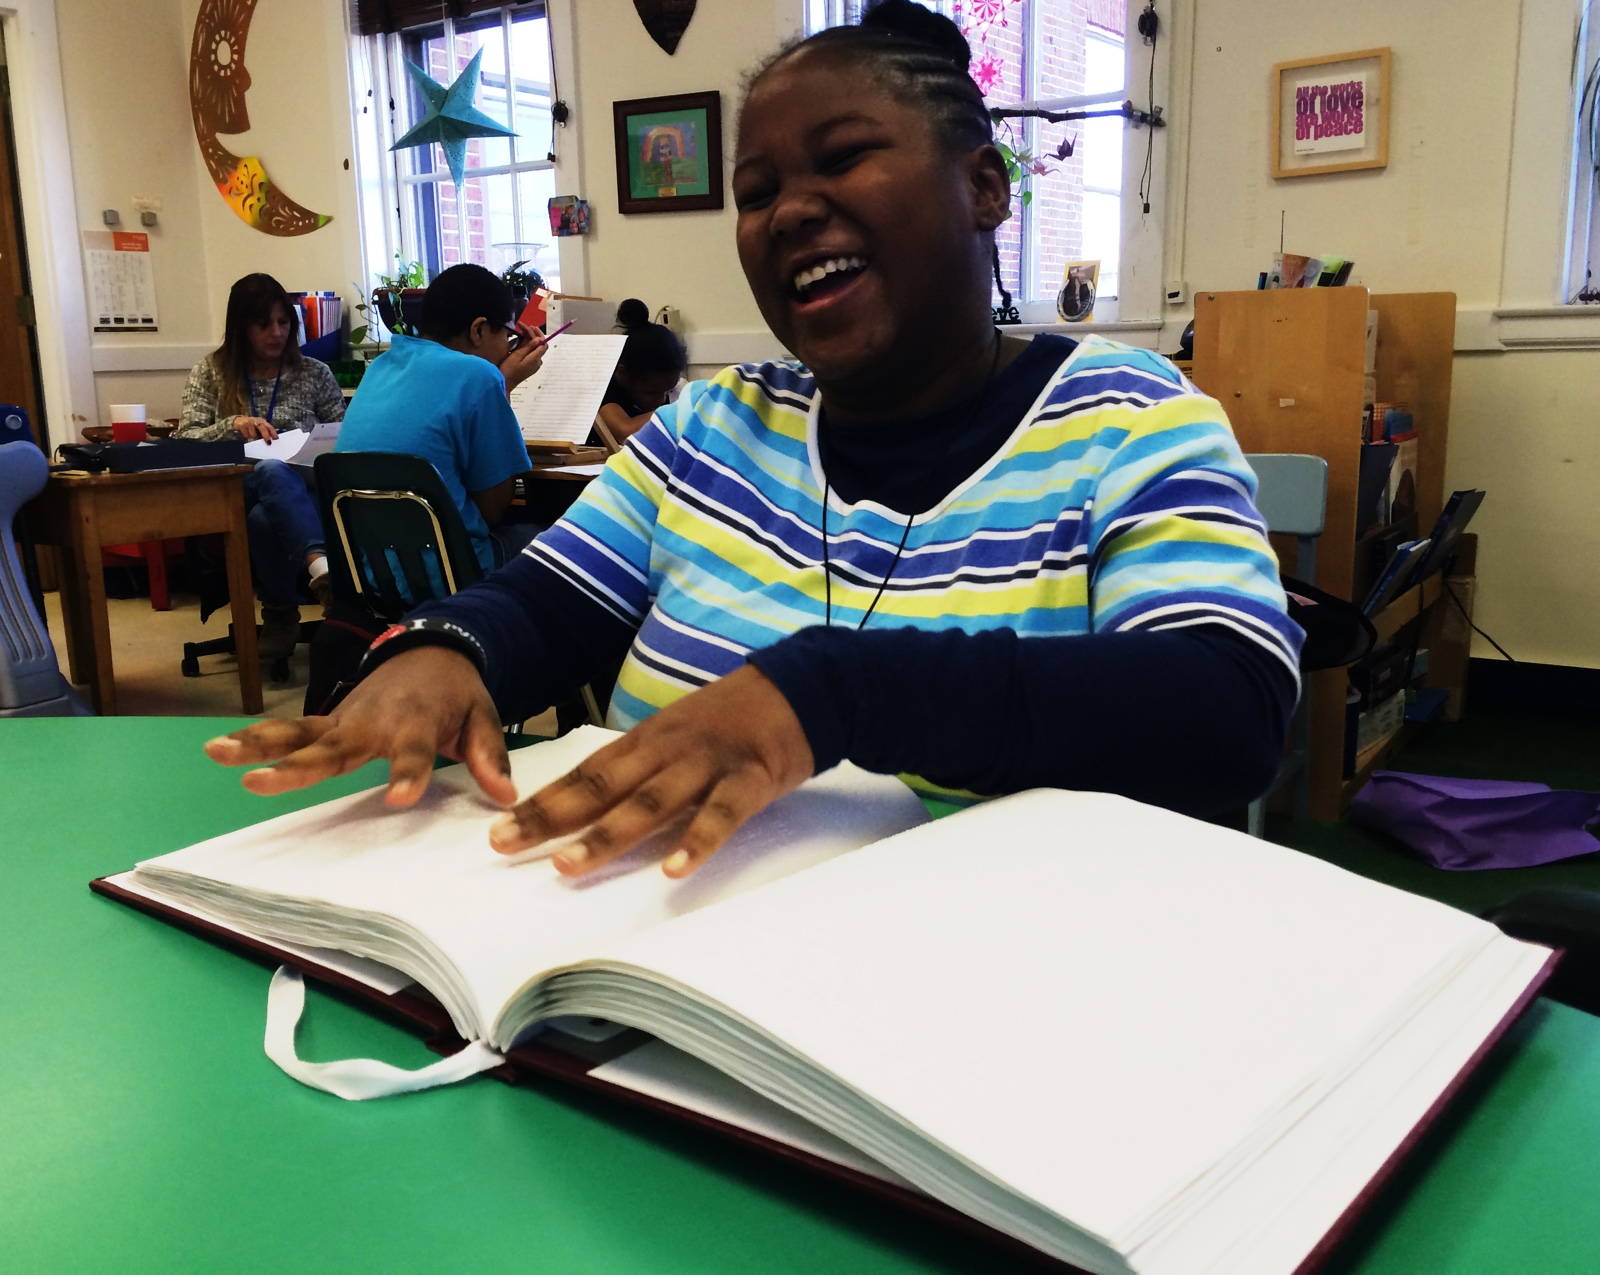 maryland library visitor reads Braille book